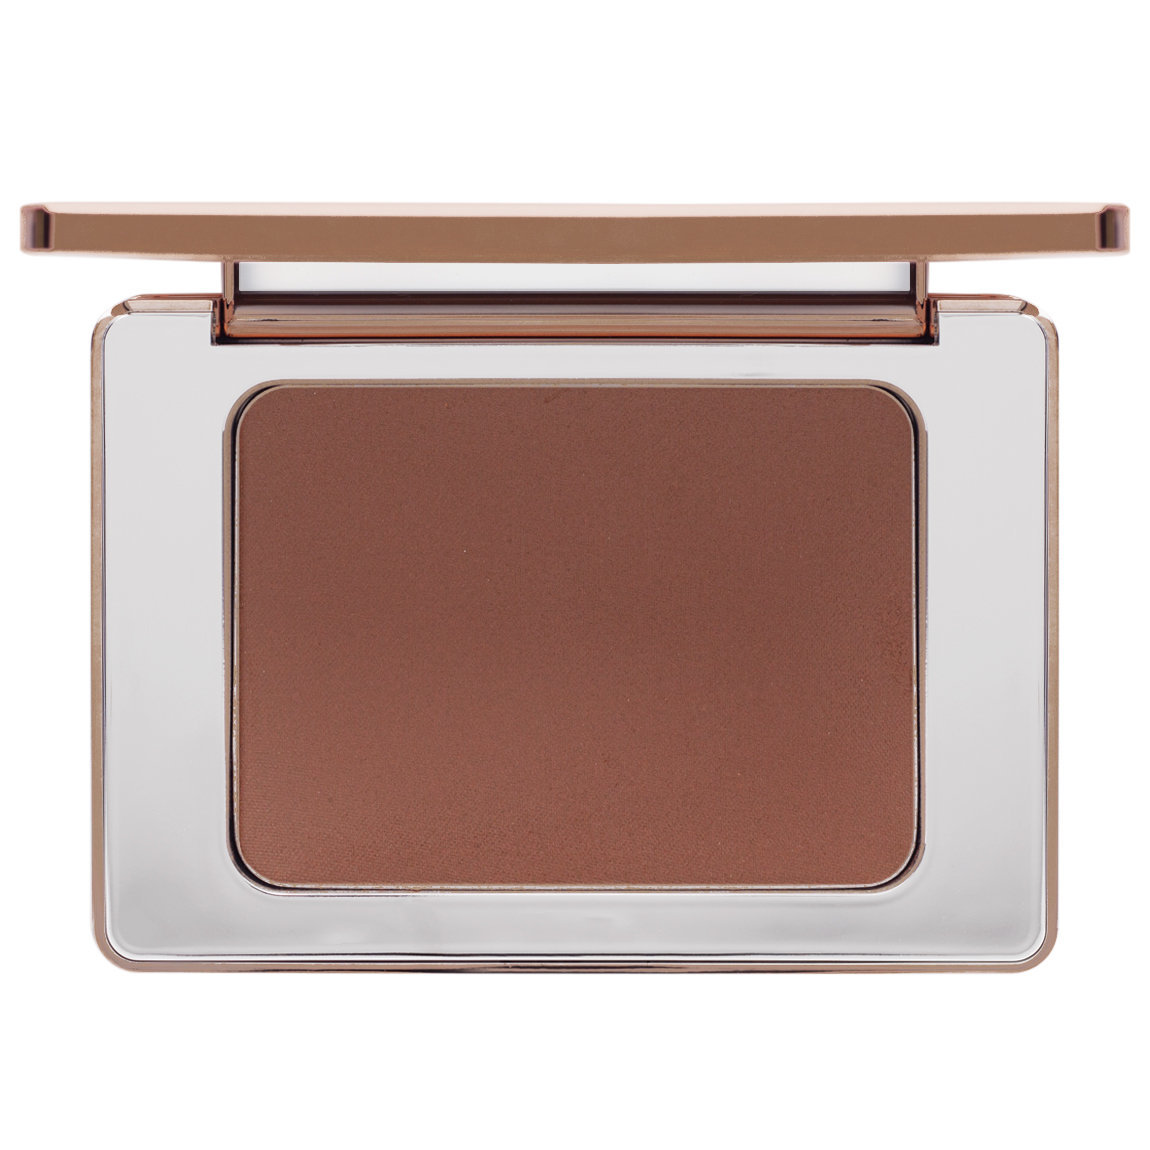 Natasha Denona Contour Sculpting Powder 05 Deep product smear.